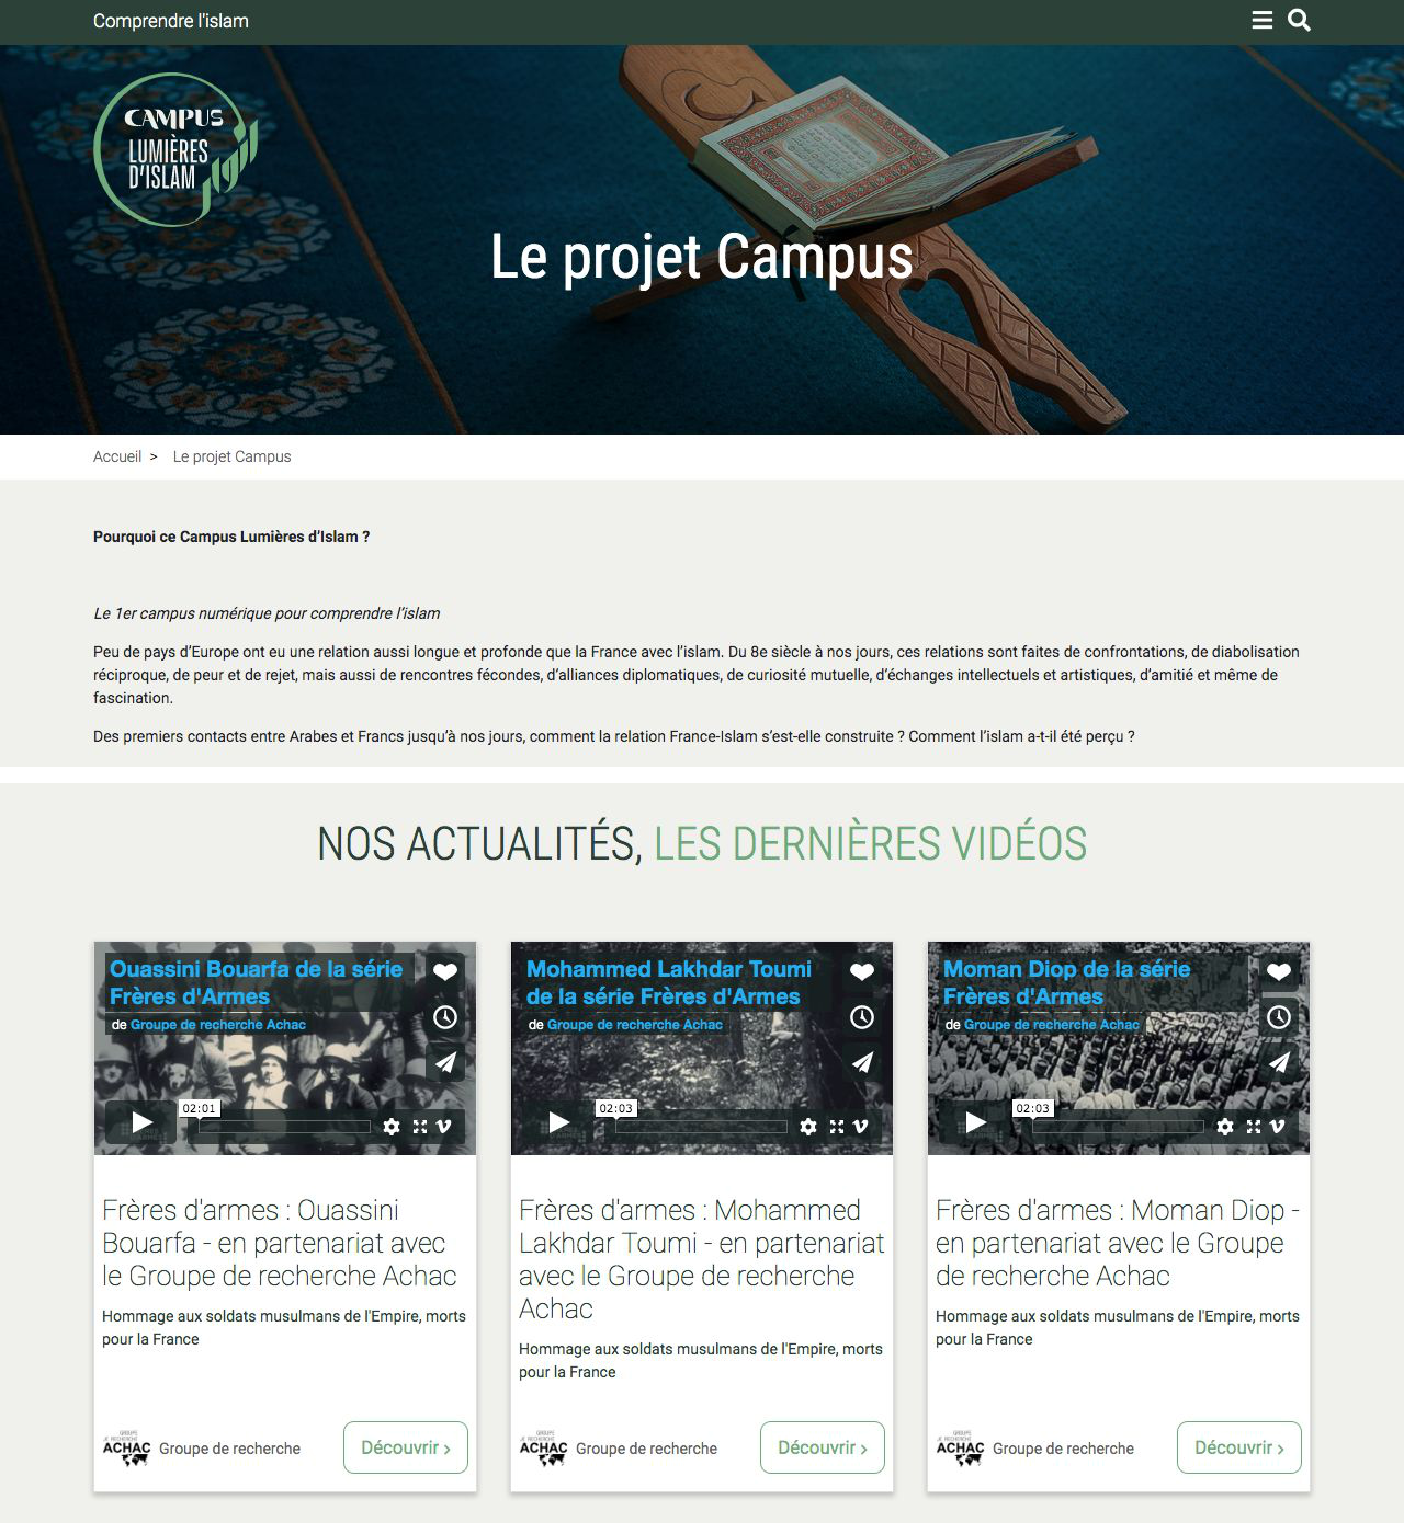 Web Site to understand Islam, the aim of Campus Lumières d'Islam